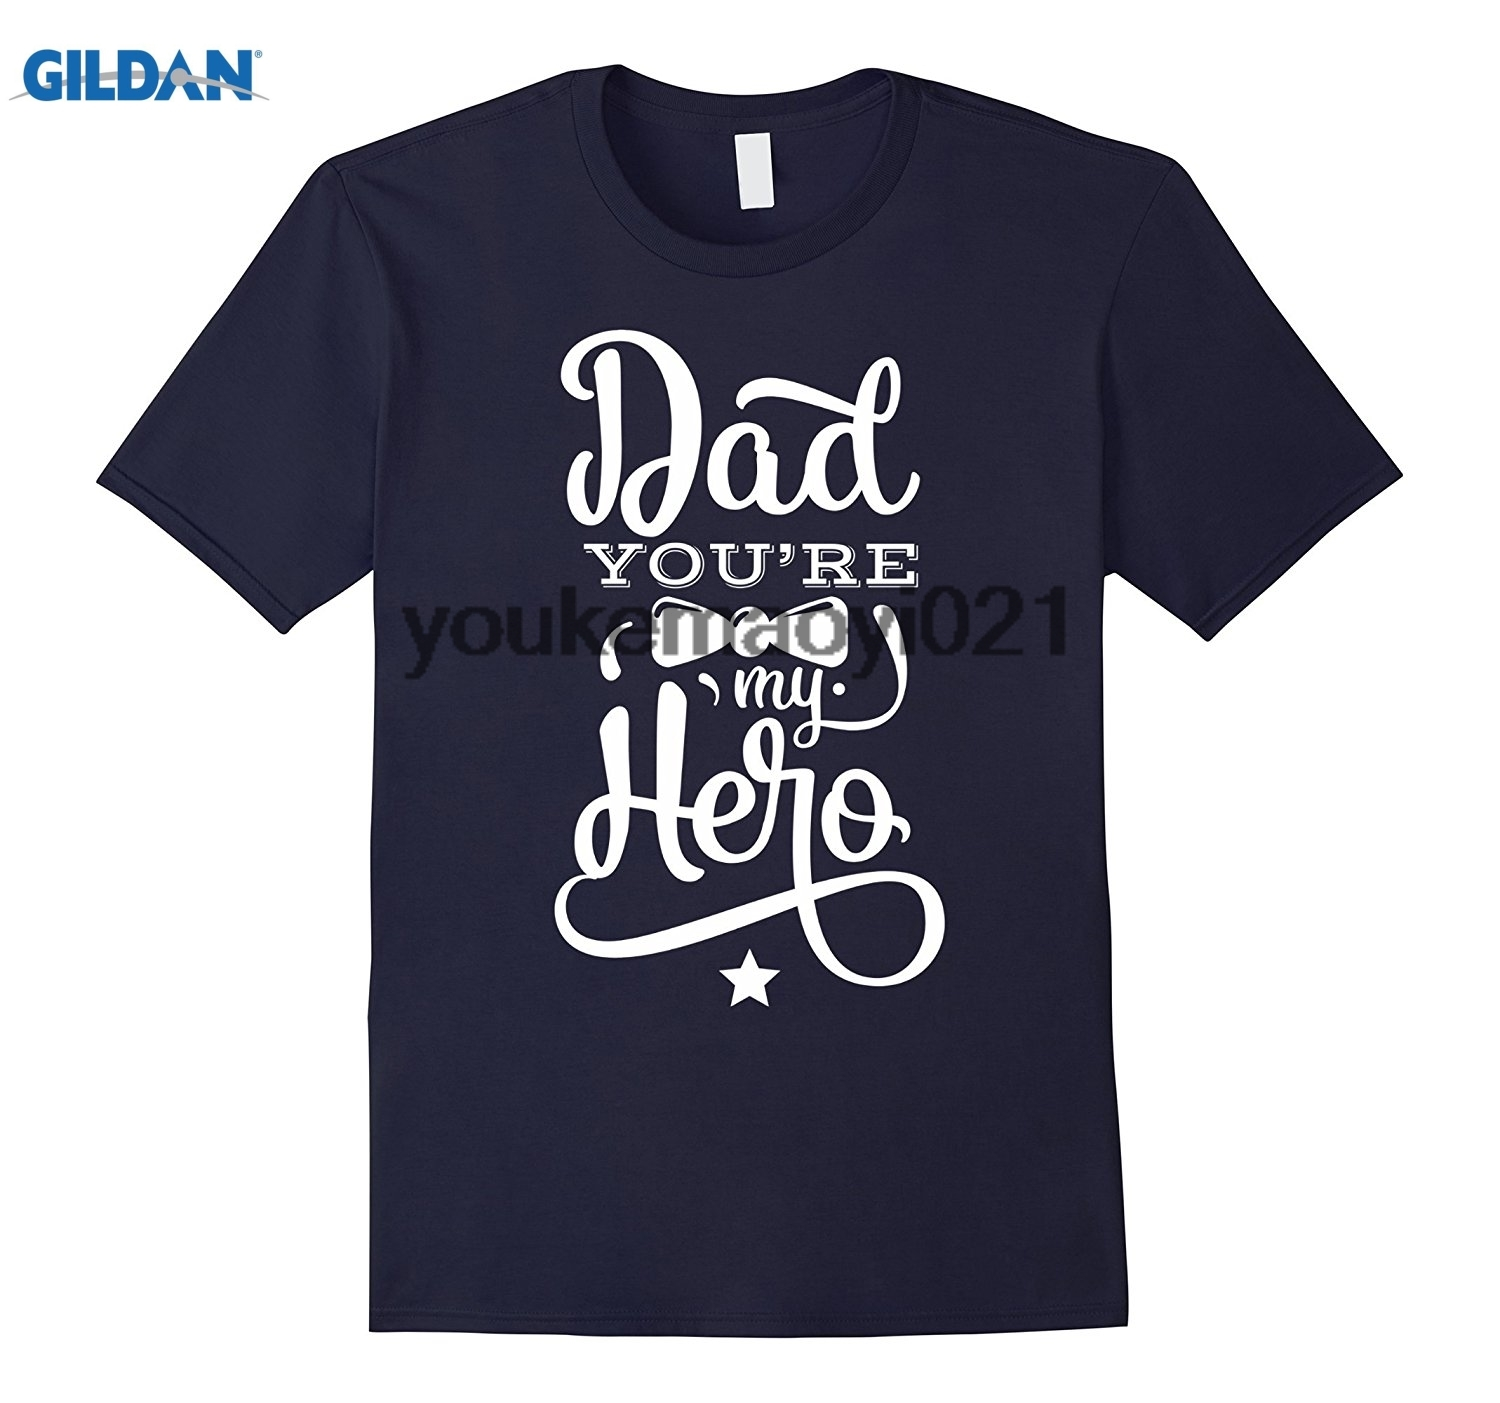 GILDAN Dad Youre My Hero Tshirt Best Gift for Dad t-shirt